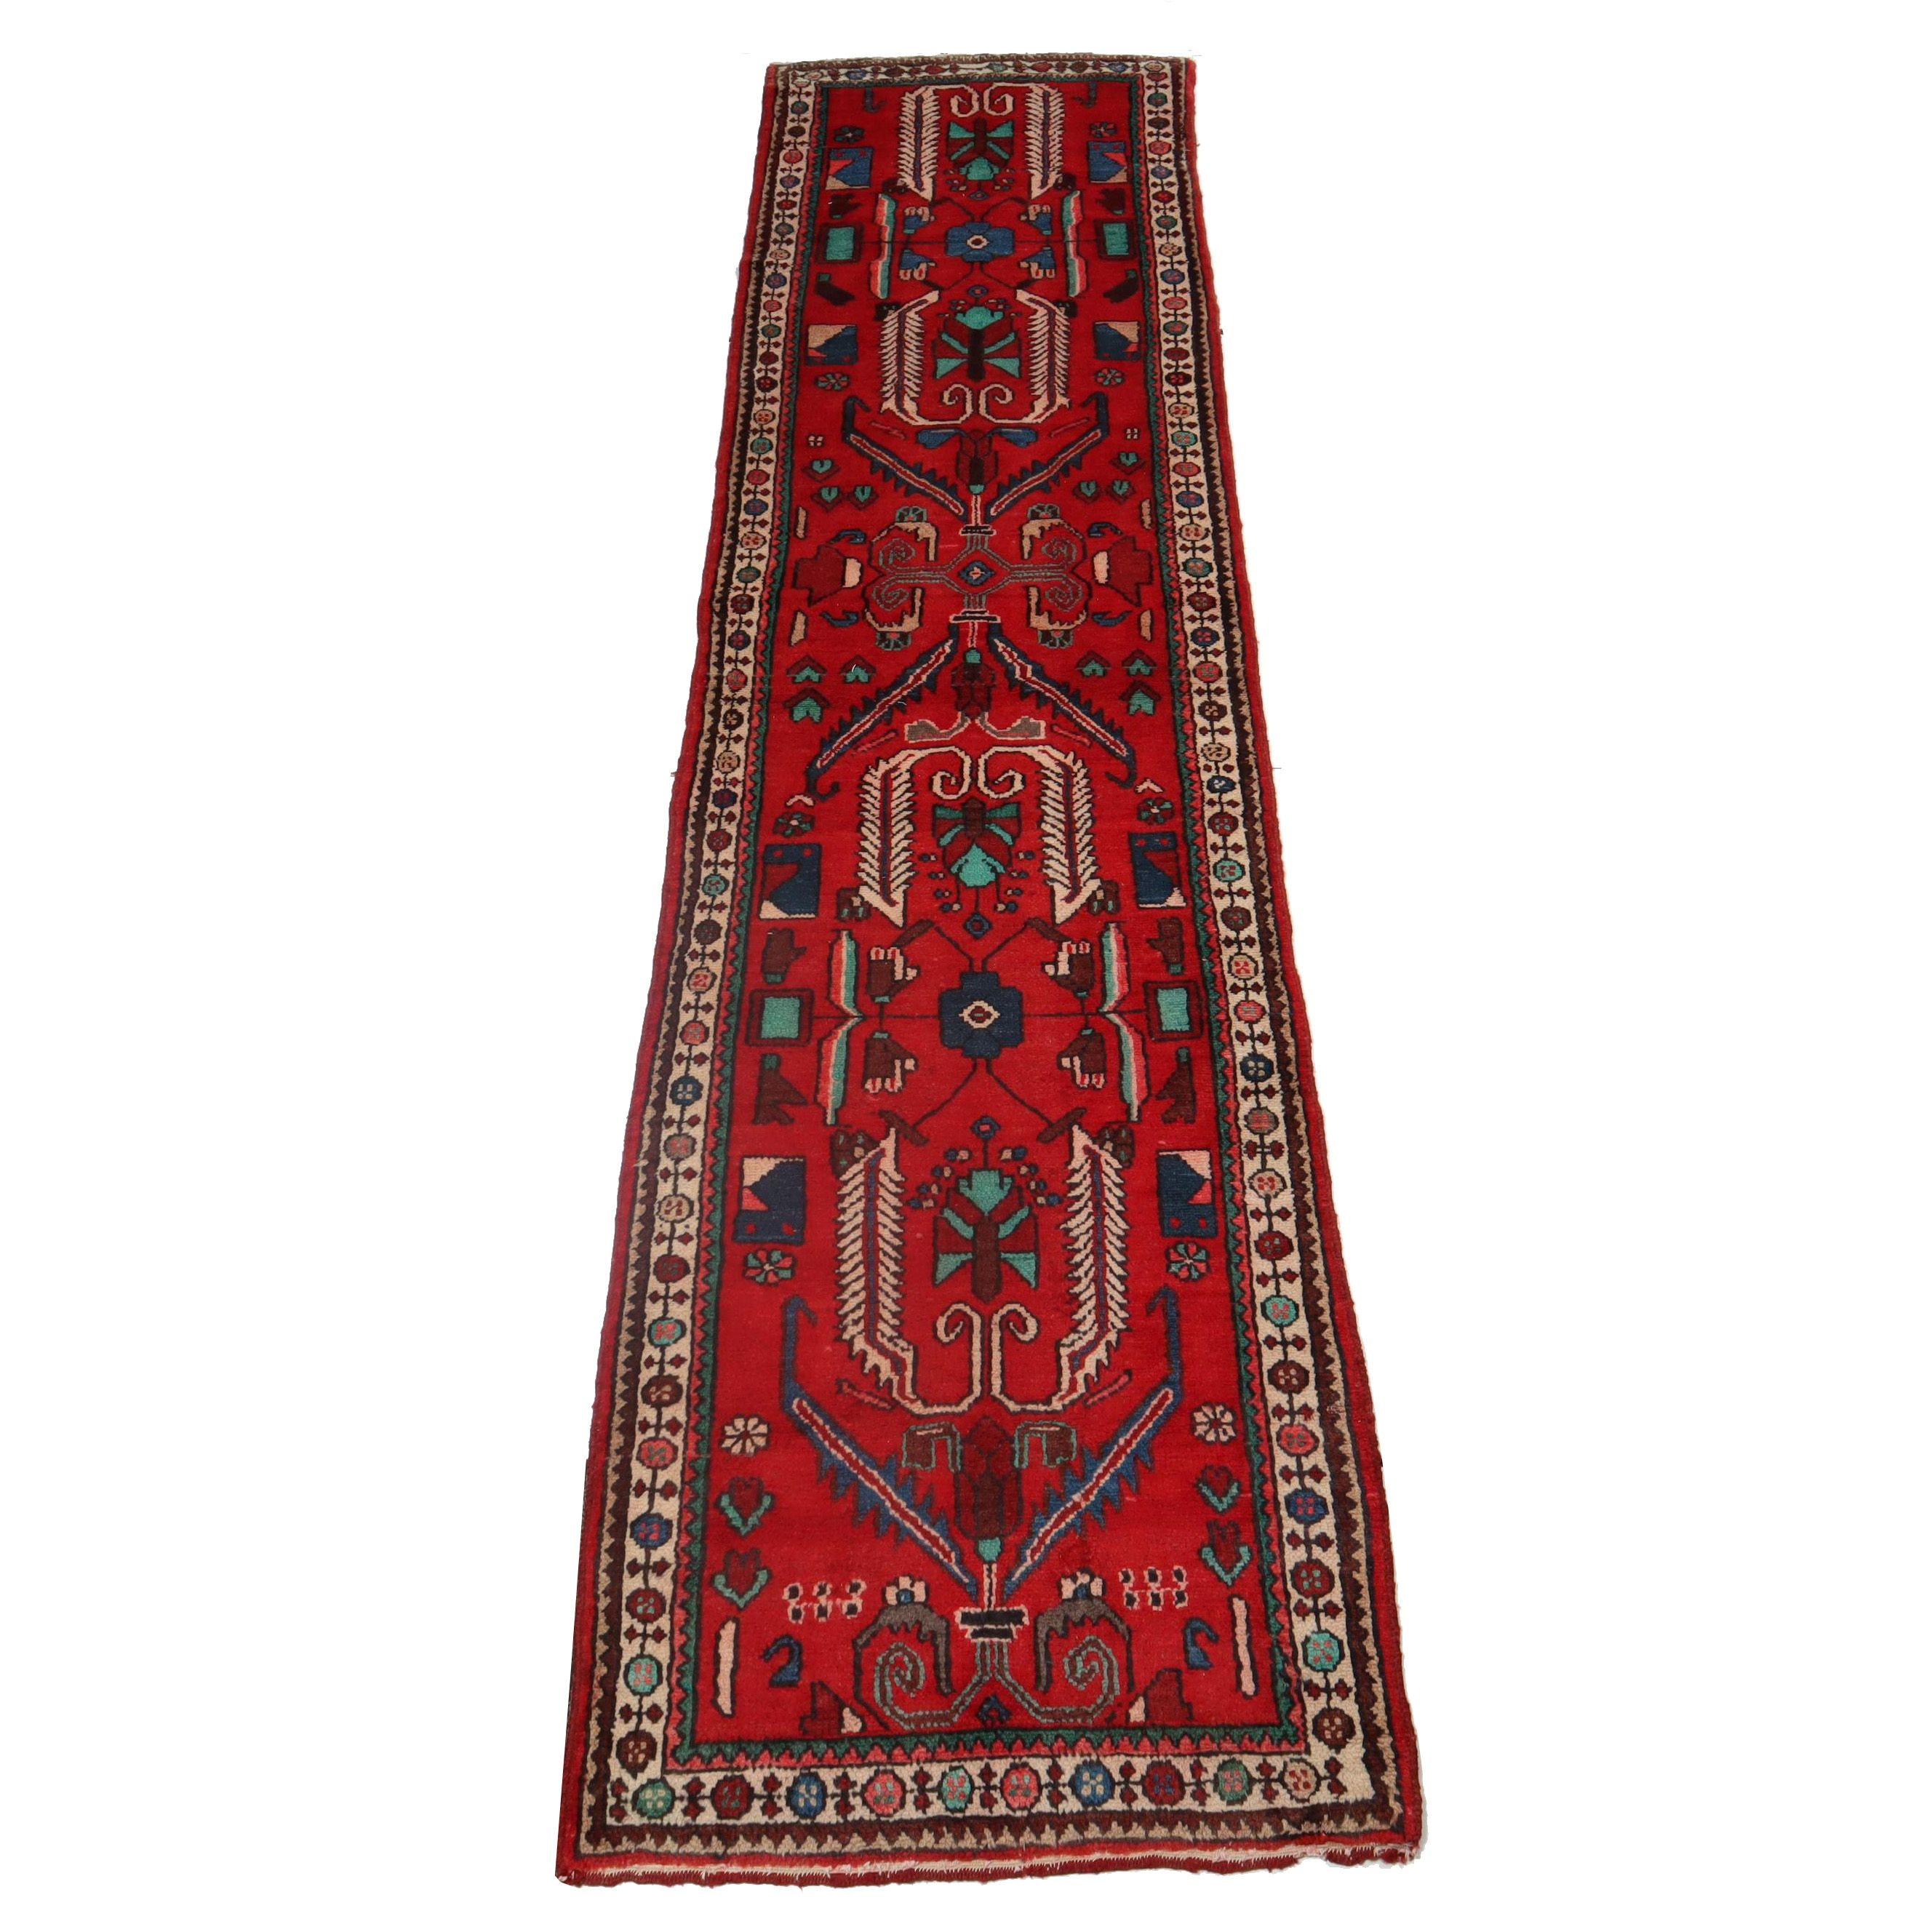 3.3' x 13.3' Hand-Knotted Persian Zanjan Carpet Runner, Circa 1950s